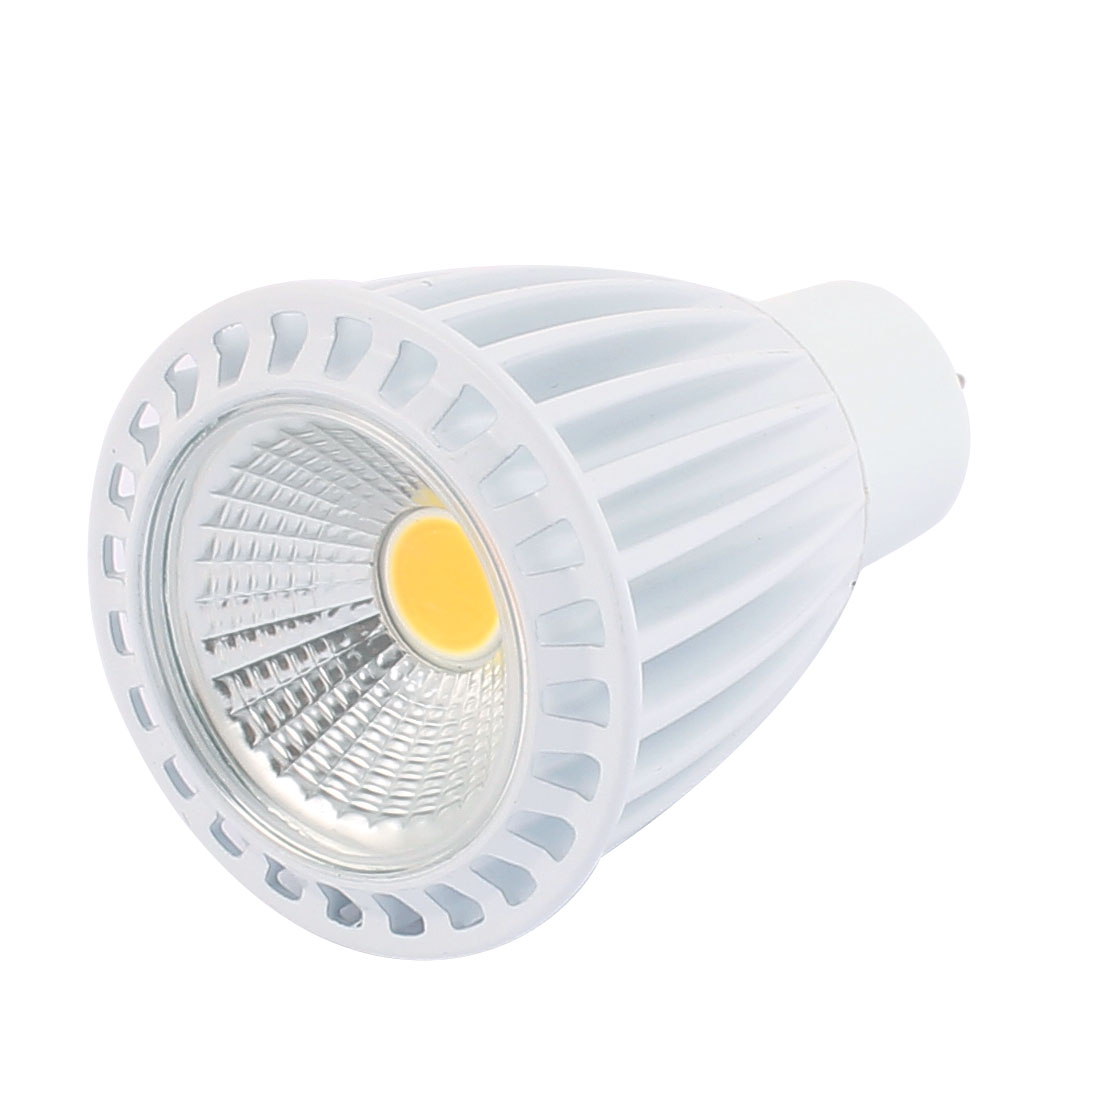 AC85-265V 7W Ultra Bright GU5.3 COB LED Spotlight Lamp Bulb Downlight Pure White